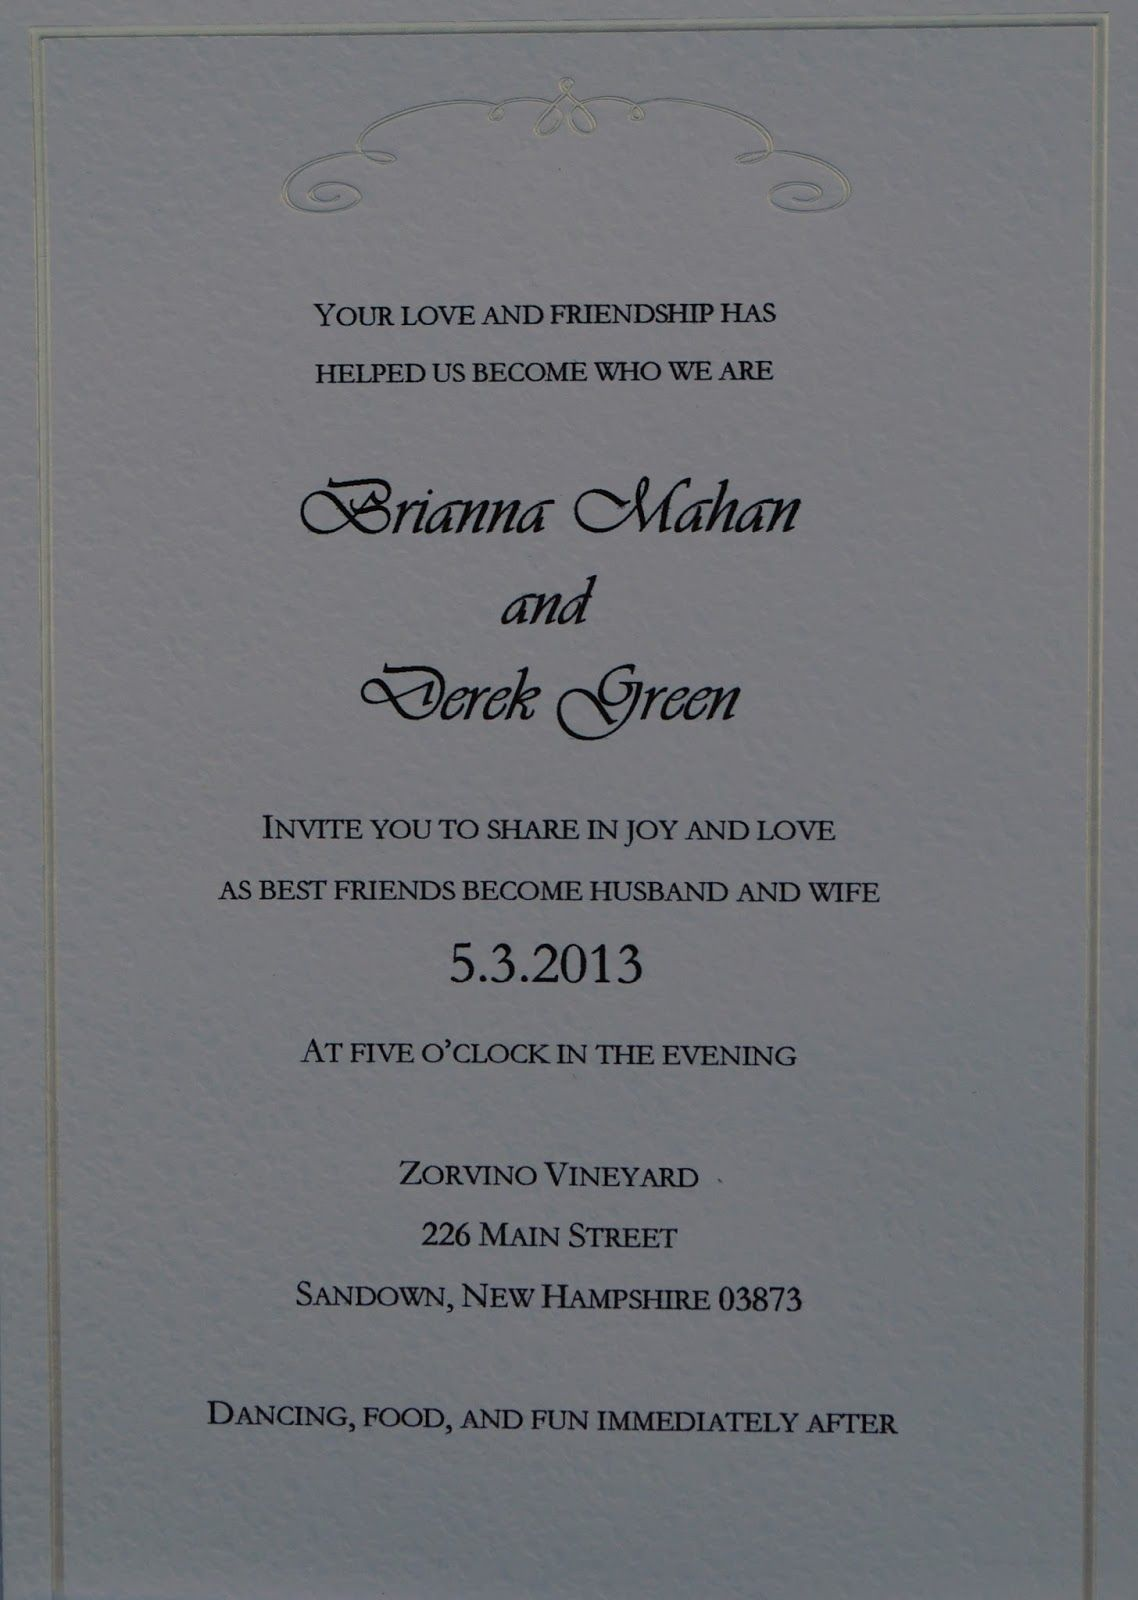 wedding invitation sample by email%0A  Wedding  invitation  wording  Alternative wording options